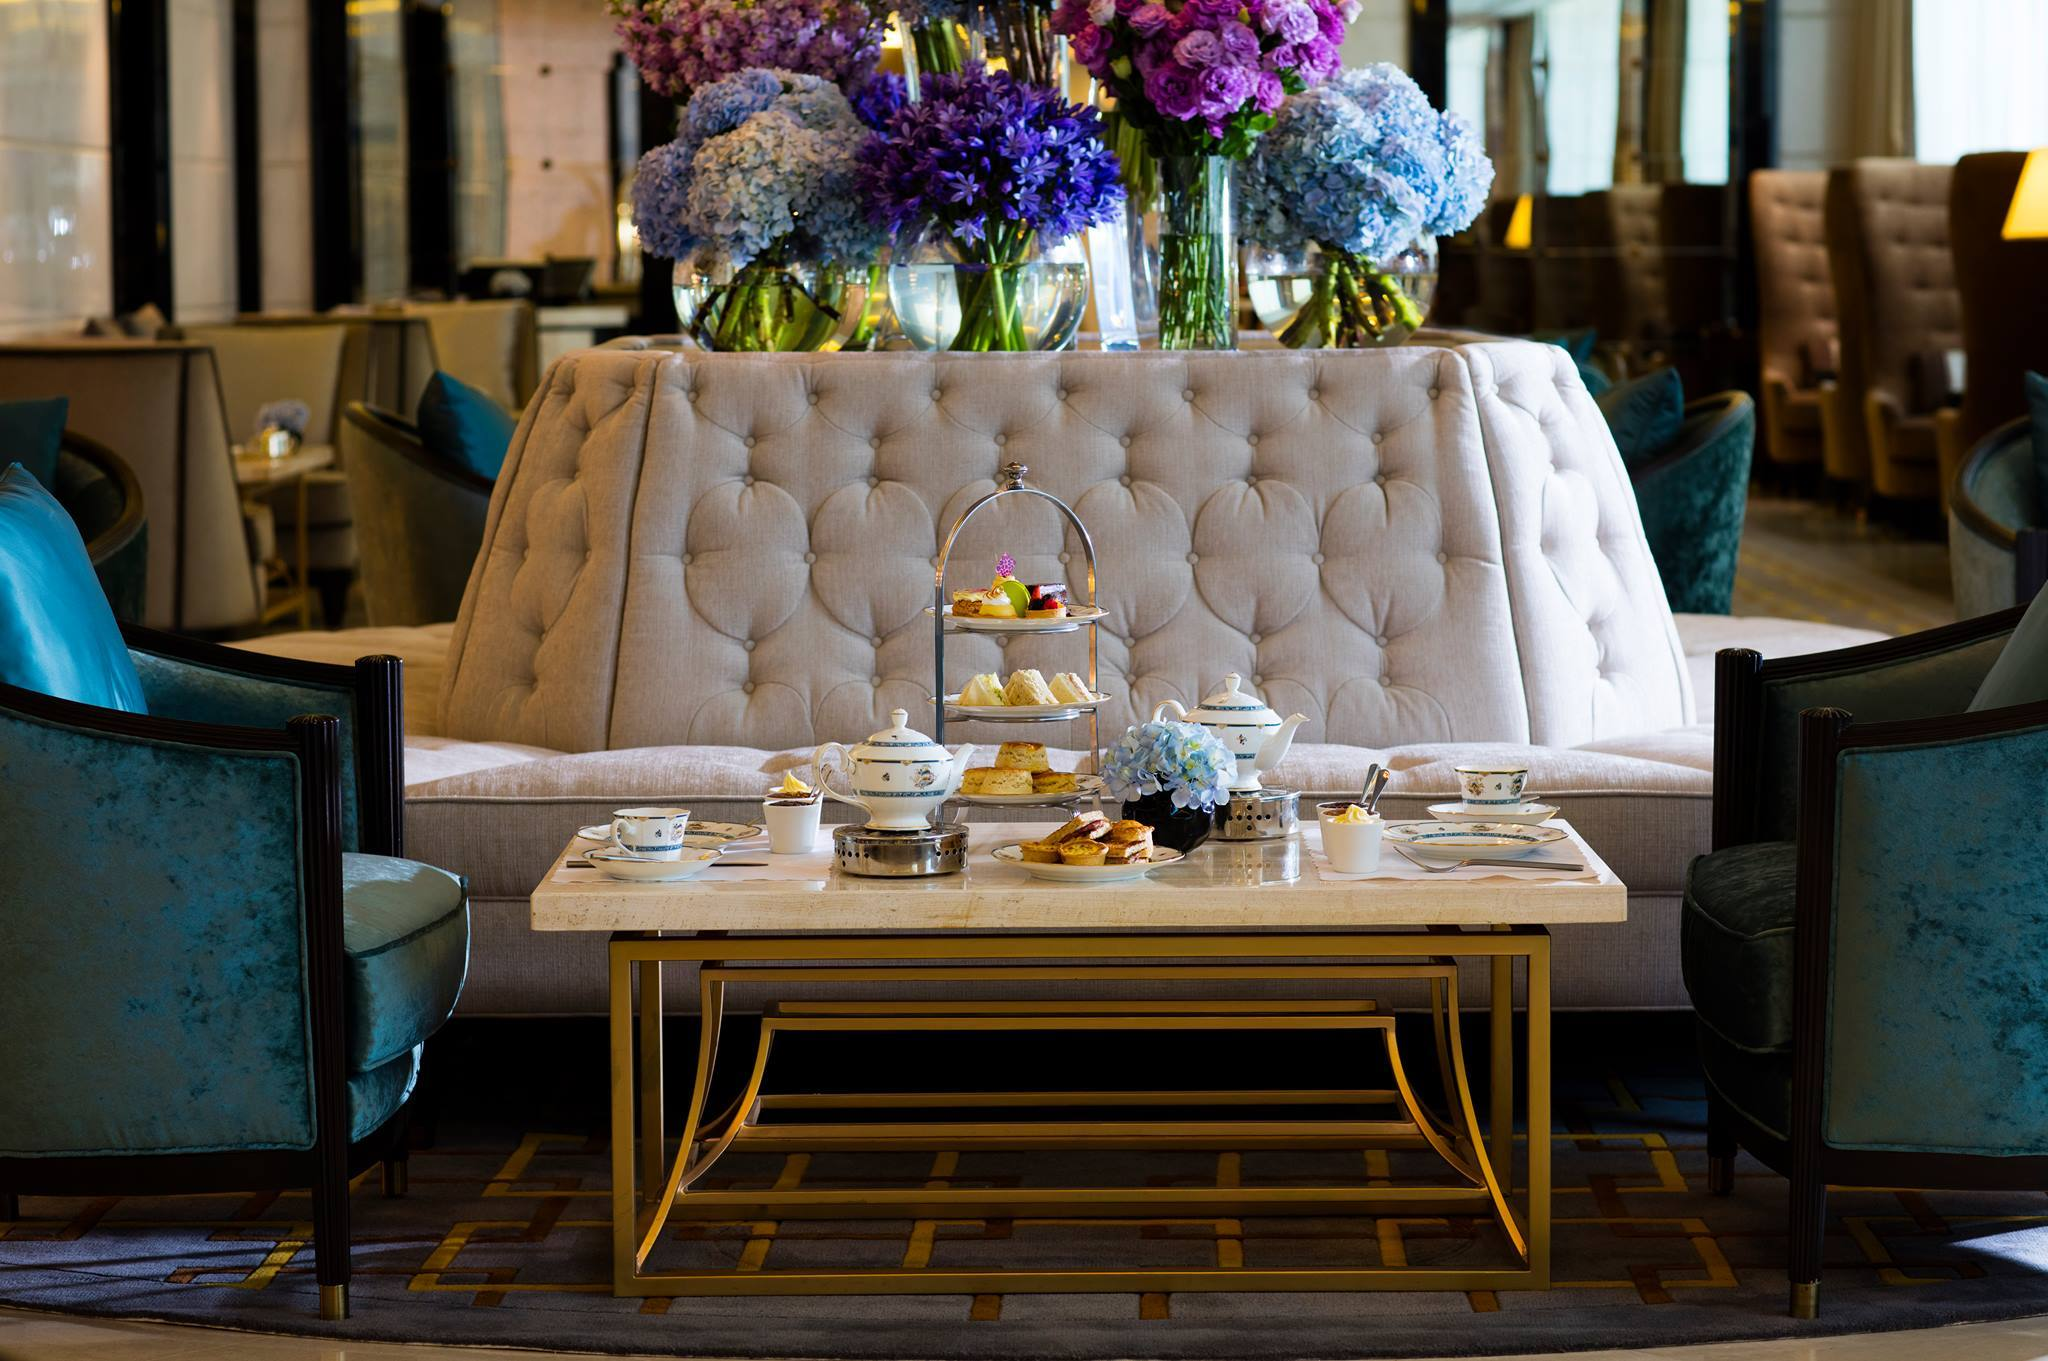 The posh experience: The Lobby Lounge